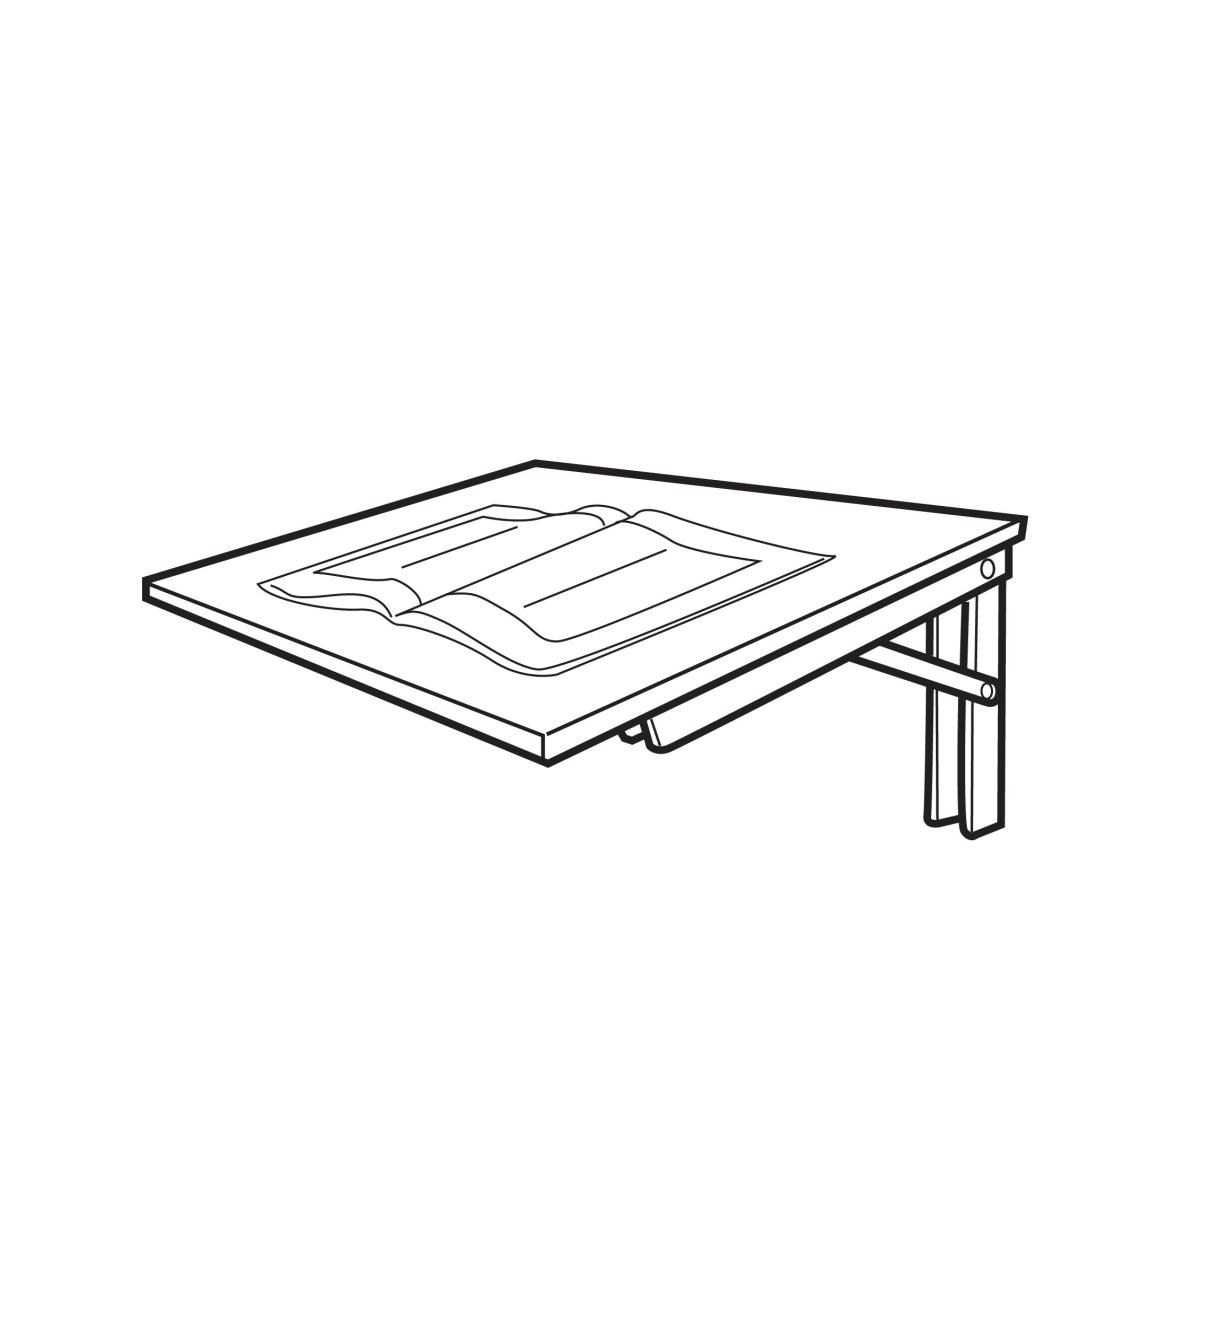 Illustrated example of fold-away table set at 80°, holding a magazine